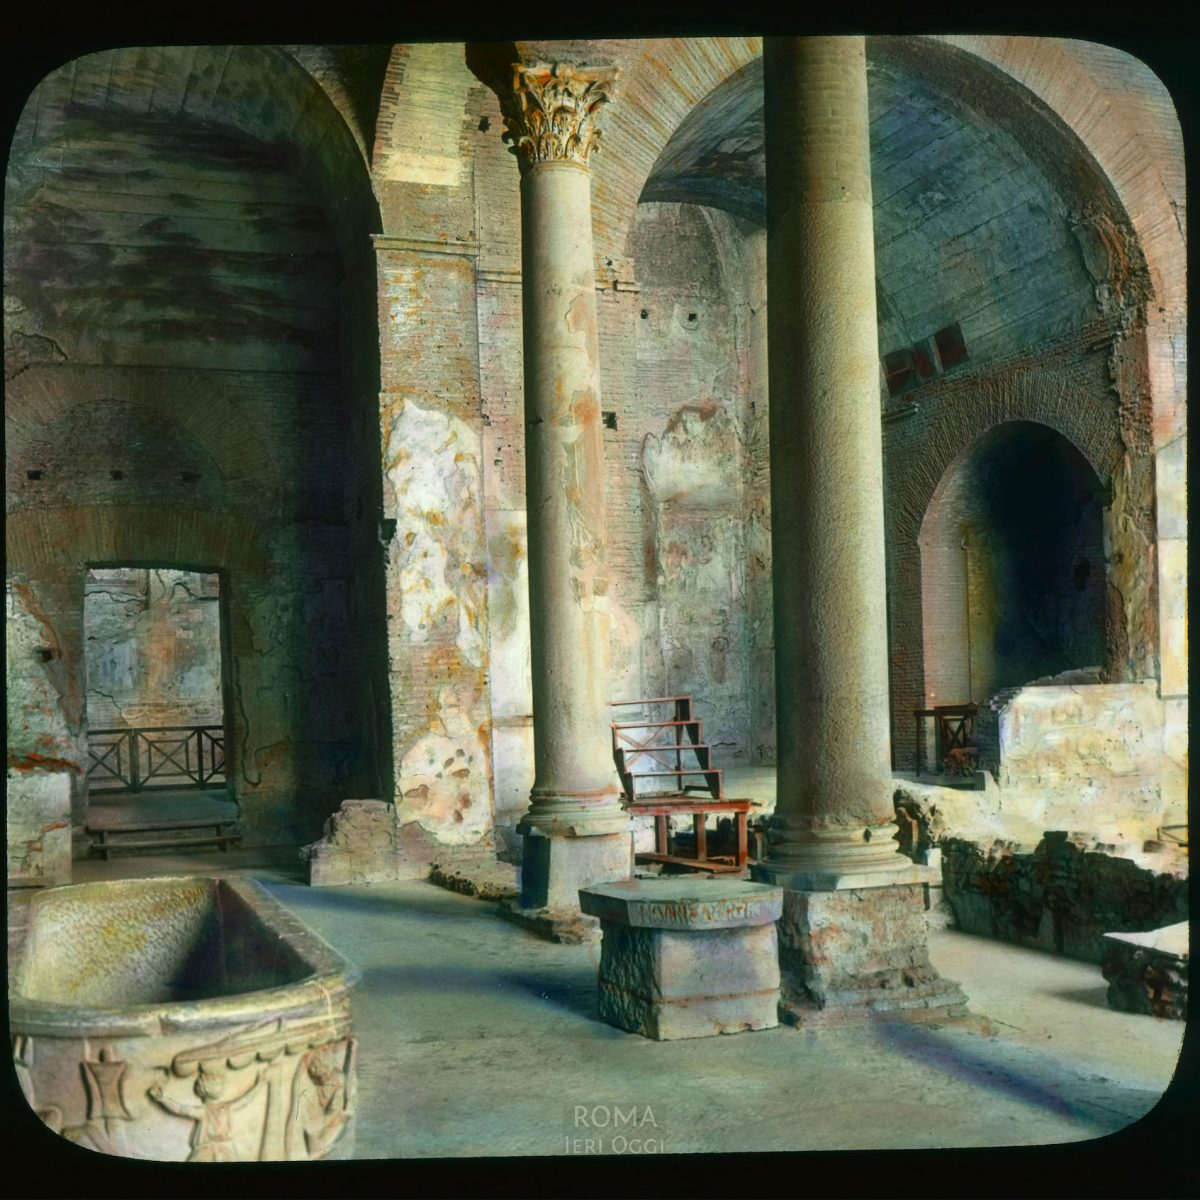 Rome. Santa Maria Antiqua: view of the church built into an older complex from 81-96 C.E. View in tinted lantern slide, ca. 1919-1938. The church dates from the mid-6th century.